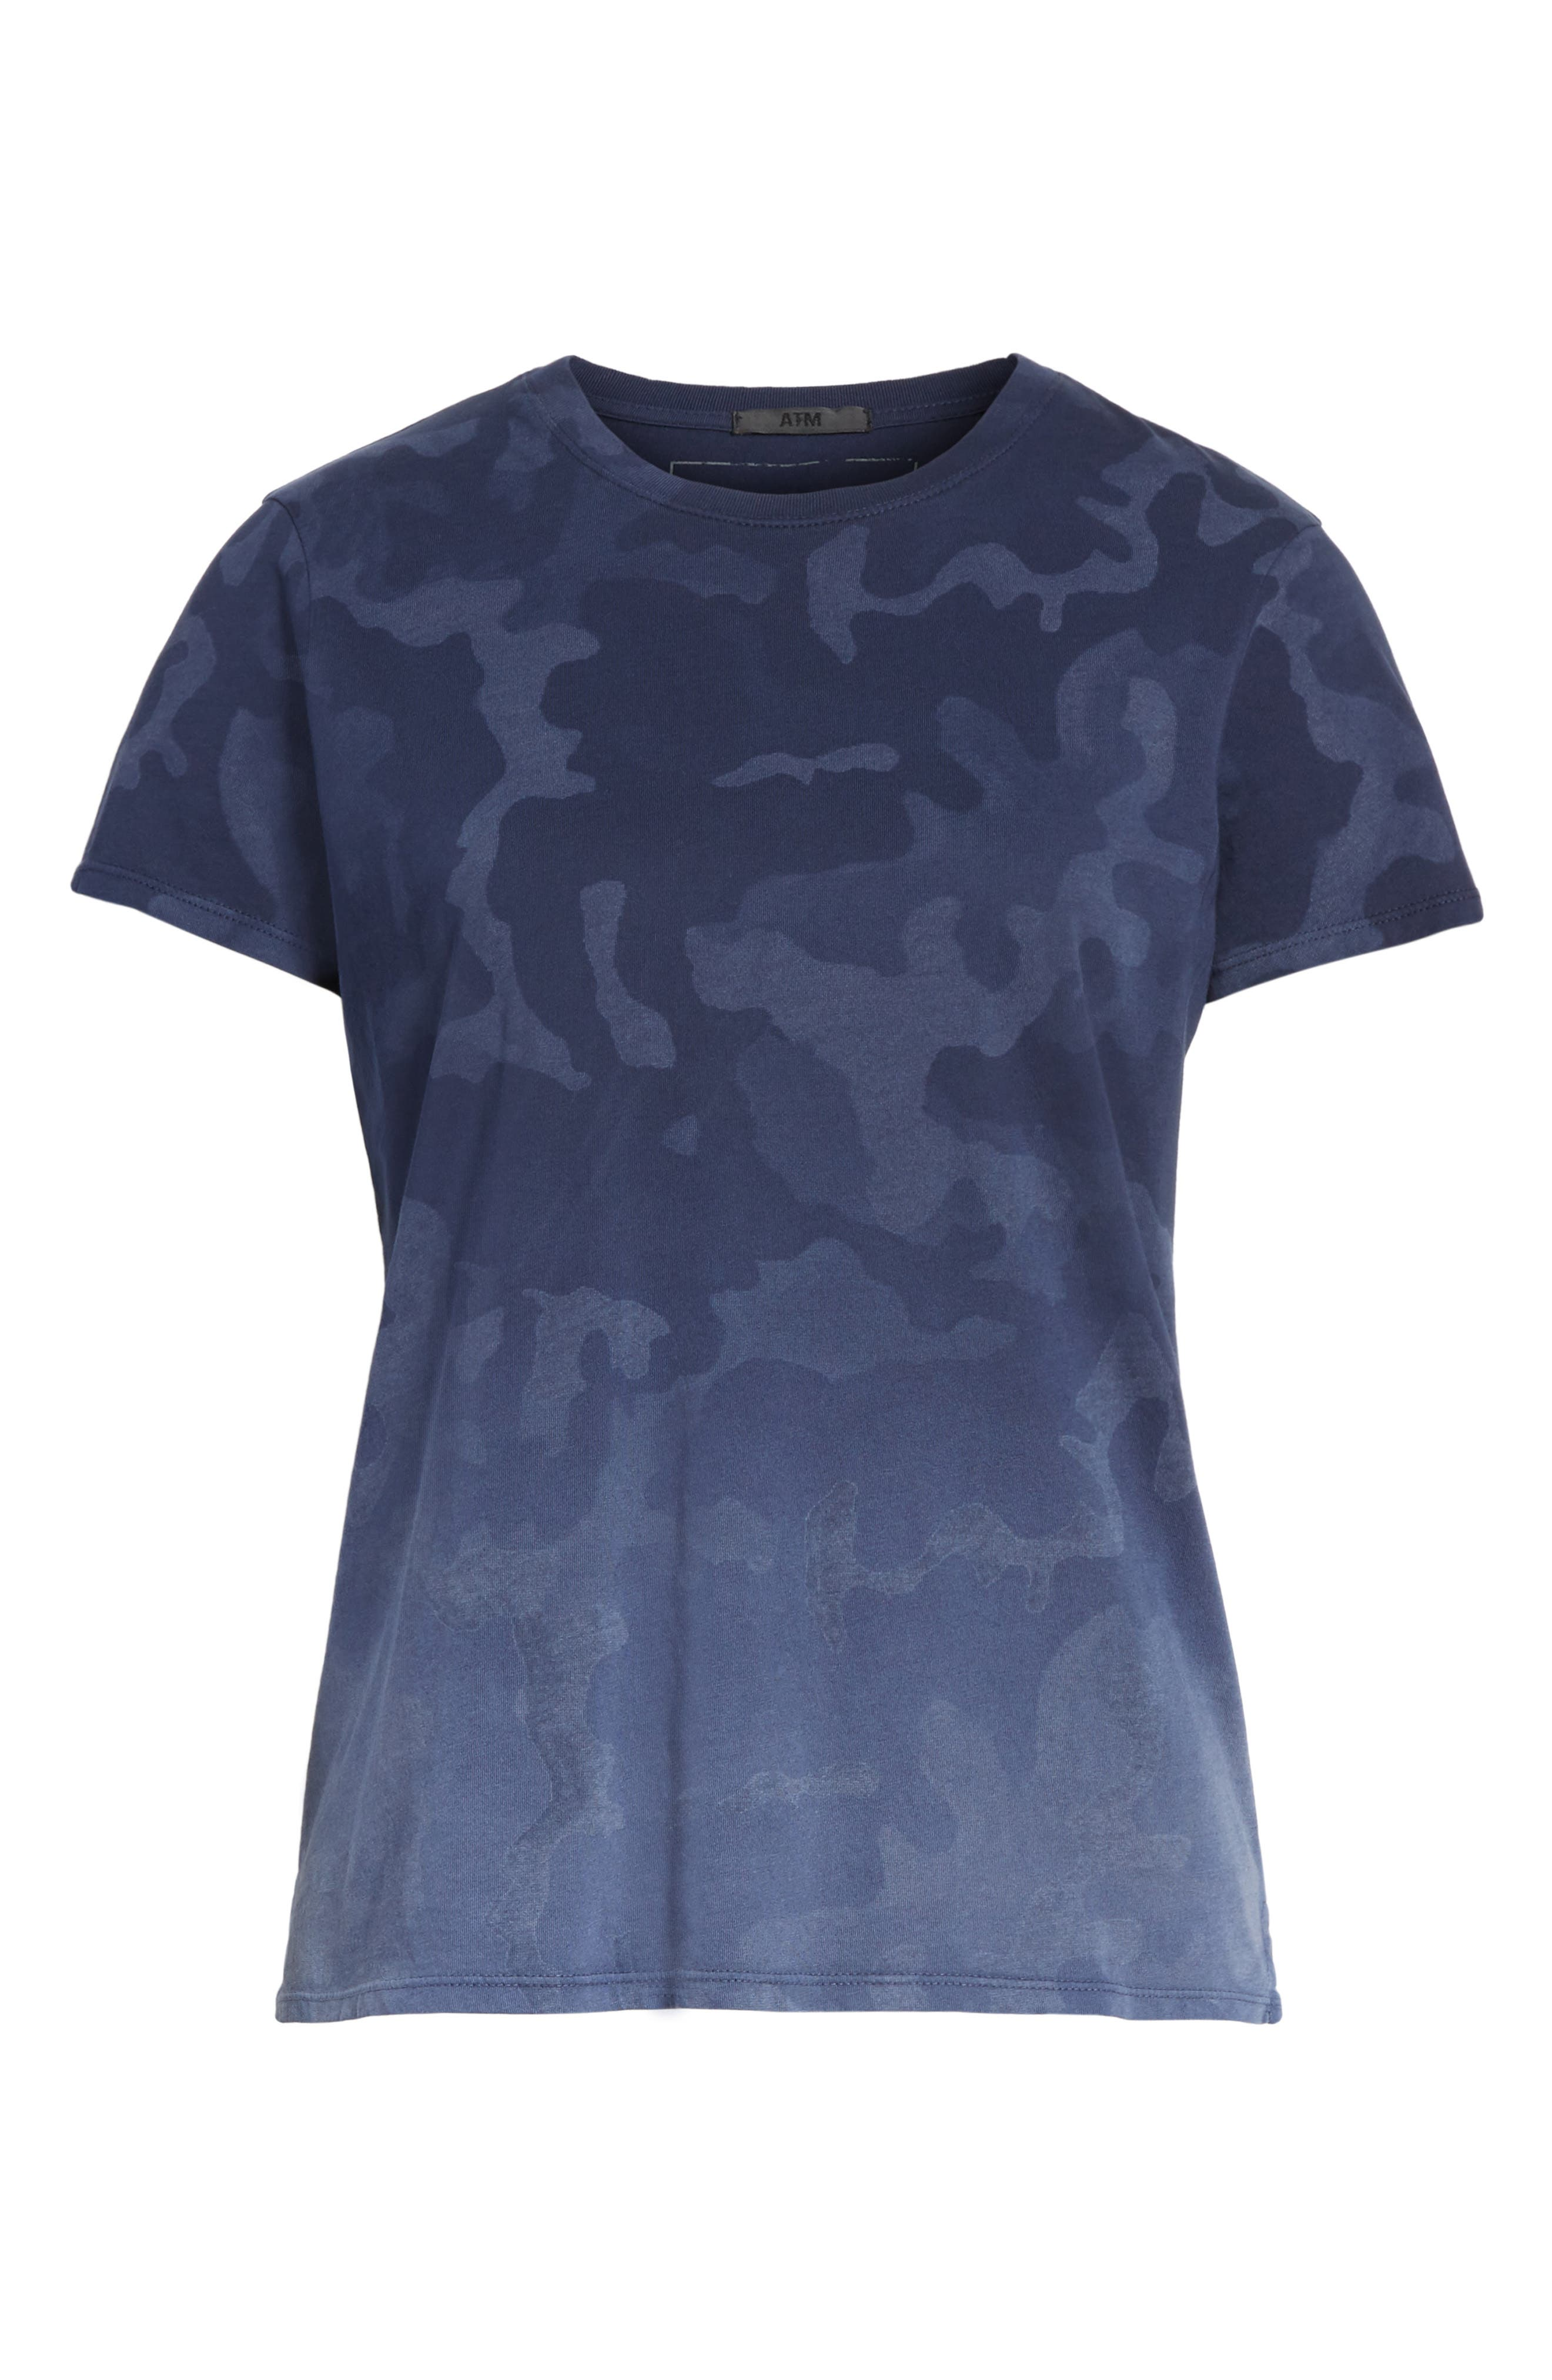 Camouflage Print Cotton Tee,                             Alternate thumbnail 6, color,                             Blue Camo